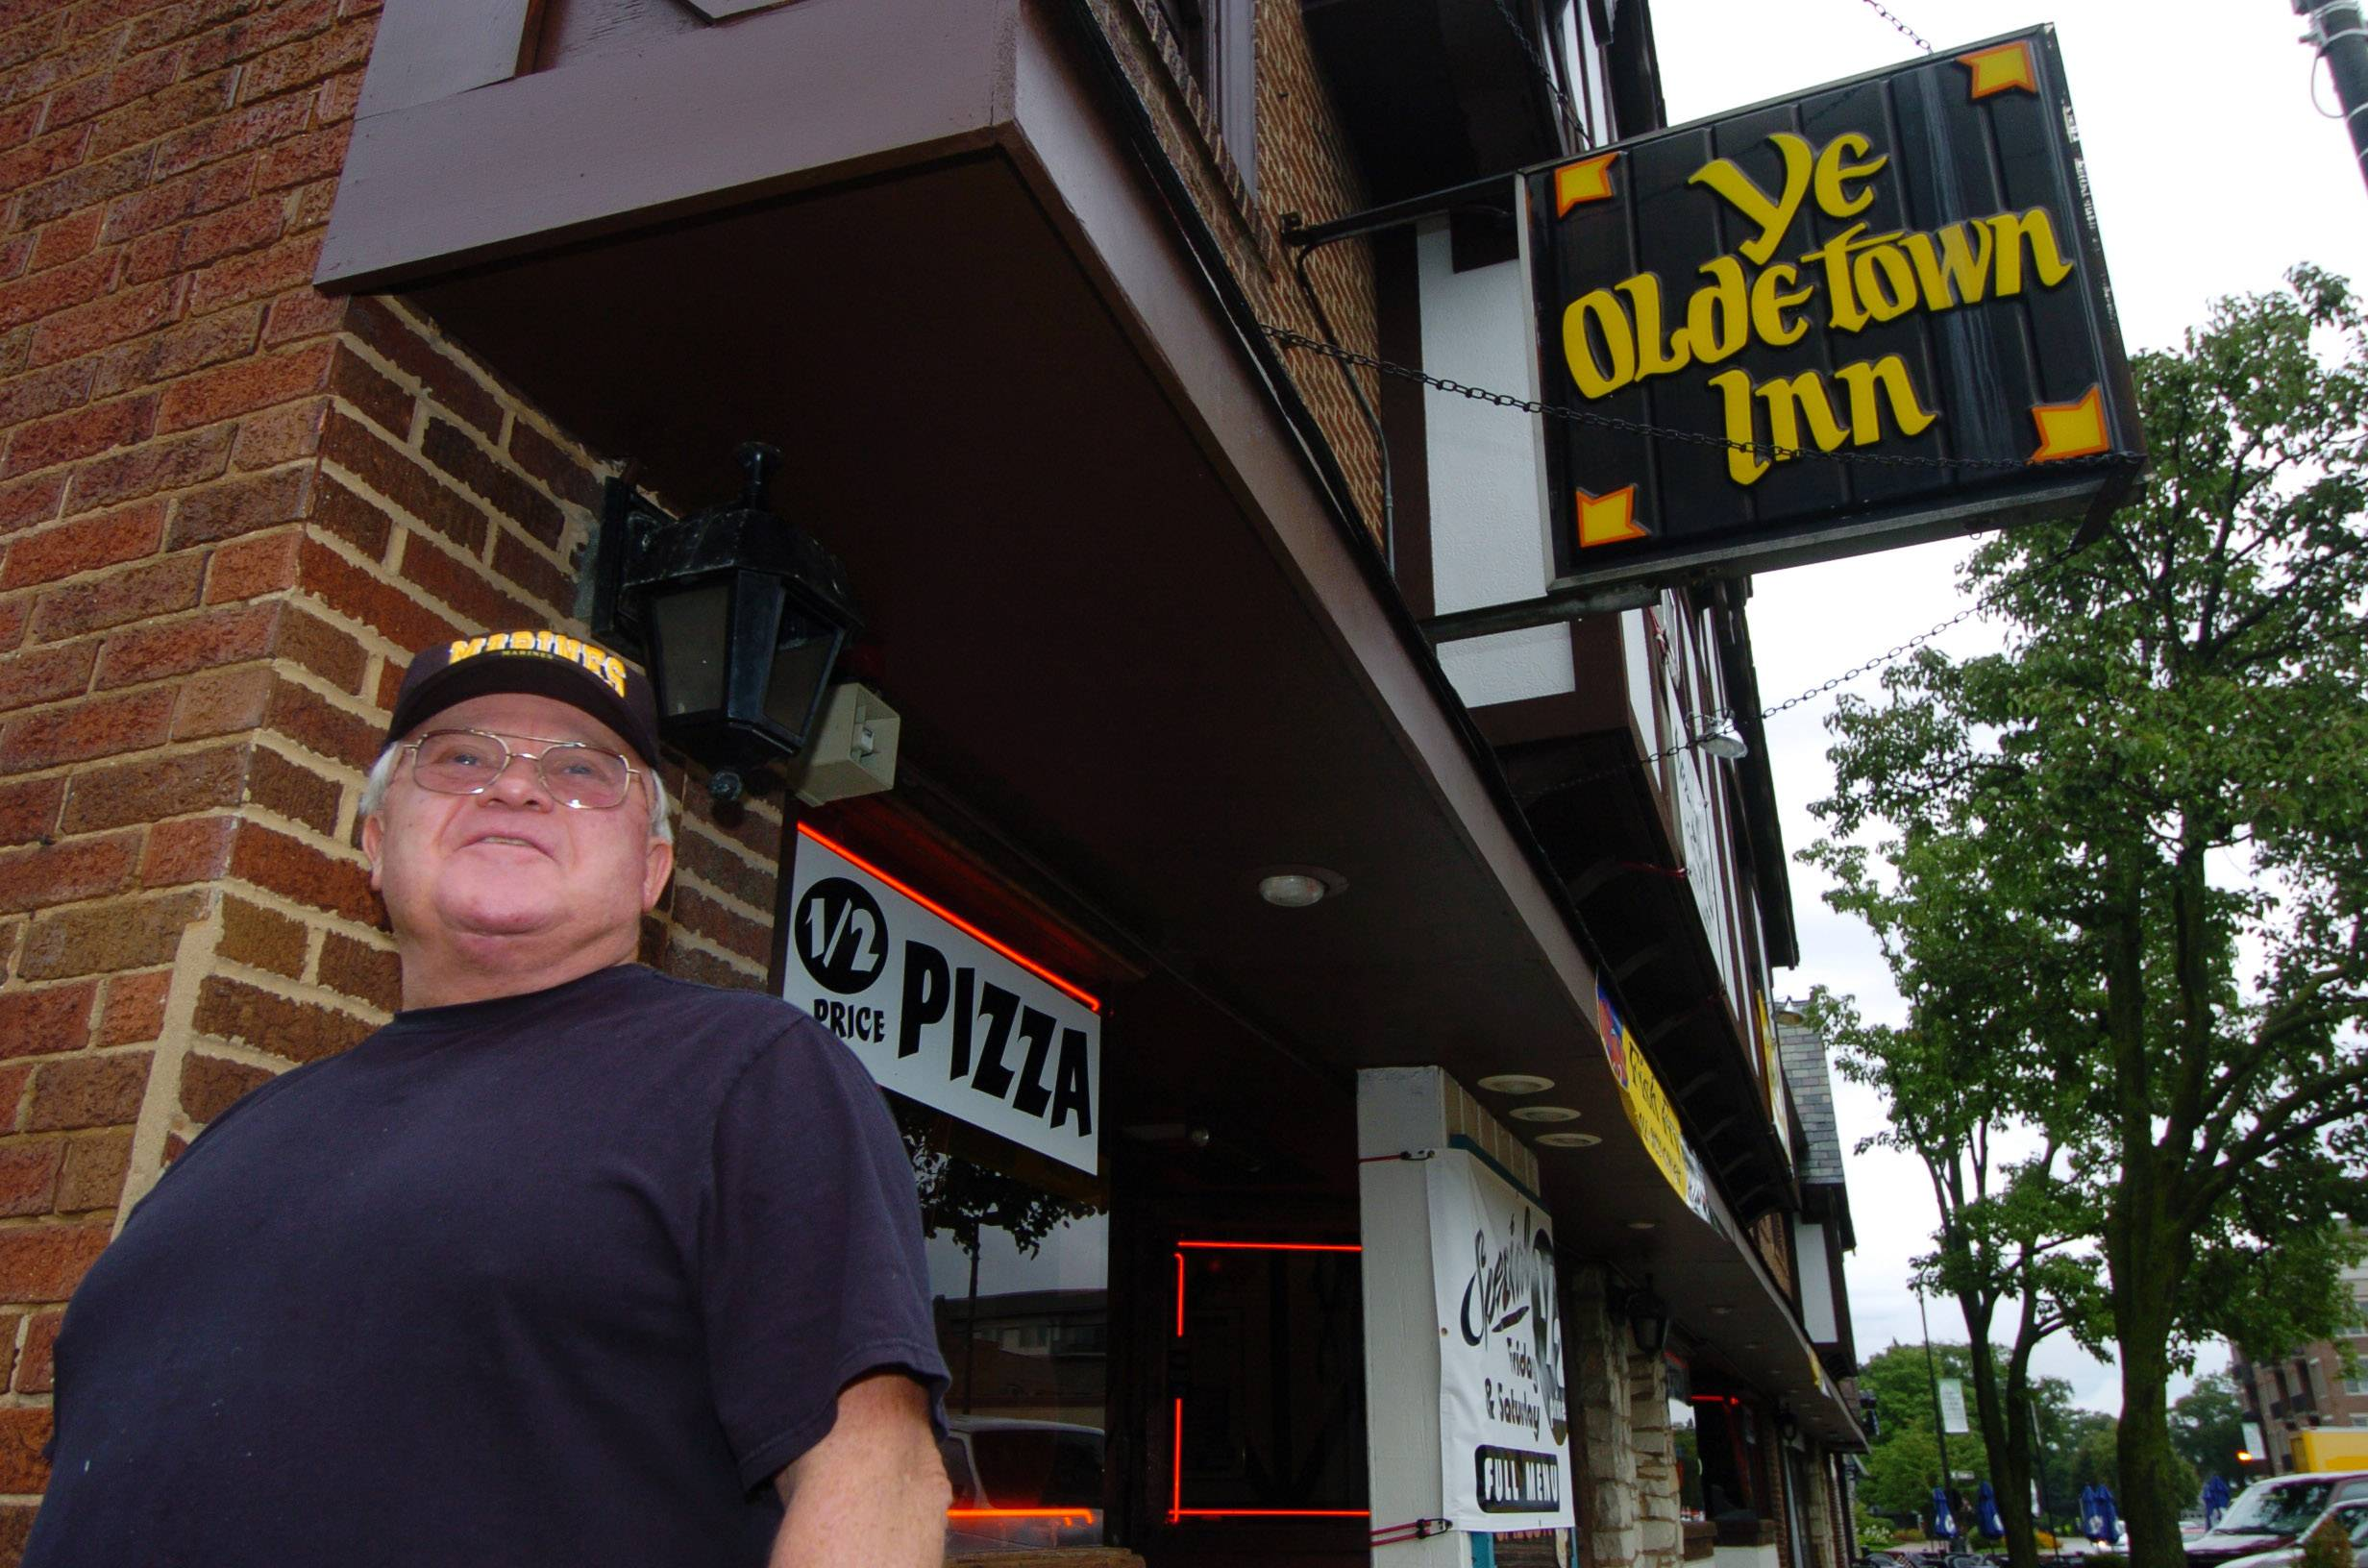 Tod Curtis, owner of the Ye Olde Town Inn in Mount Prospect, has reached an out-of-court settlement with village officials he sued in federal court over allegations they and a local development company conspired to seize his land. Terms of the settlement were not made public Monday.